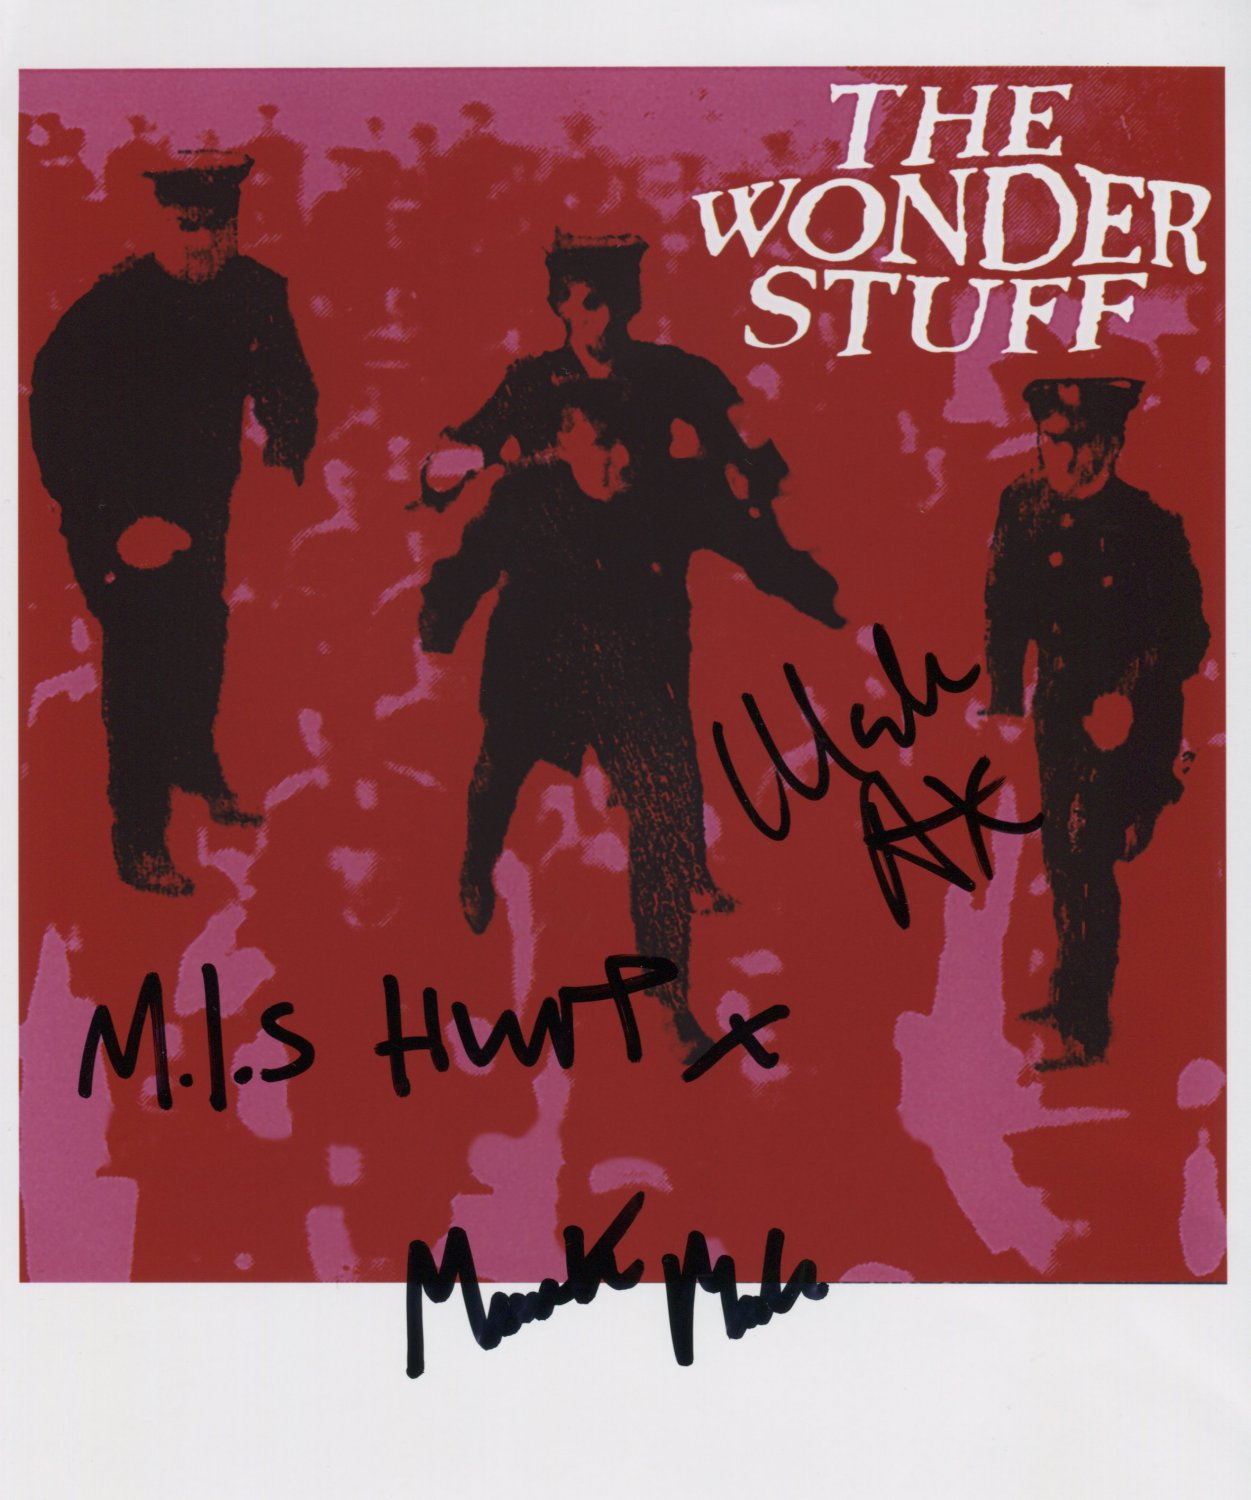 """The Wonder Stuff SIGNED 8"""" x 10"""" Photo + Certificate Of Authentication 100% Genuine"""